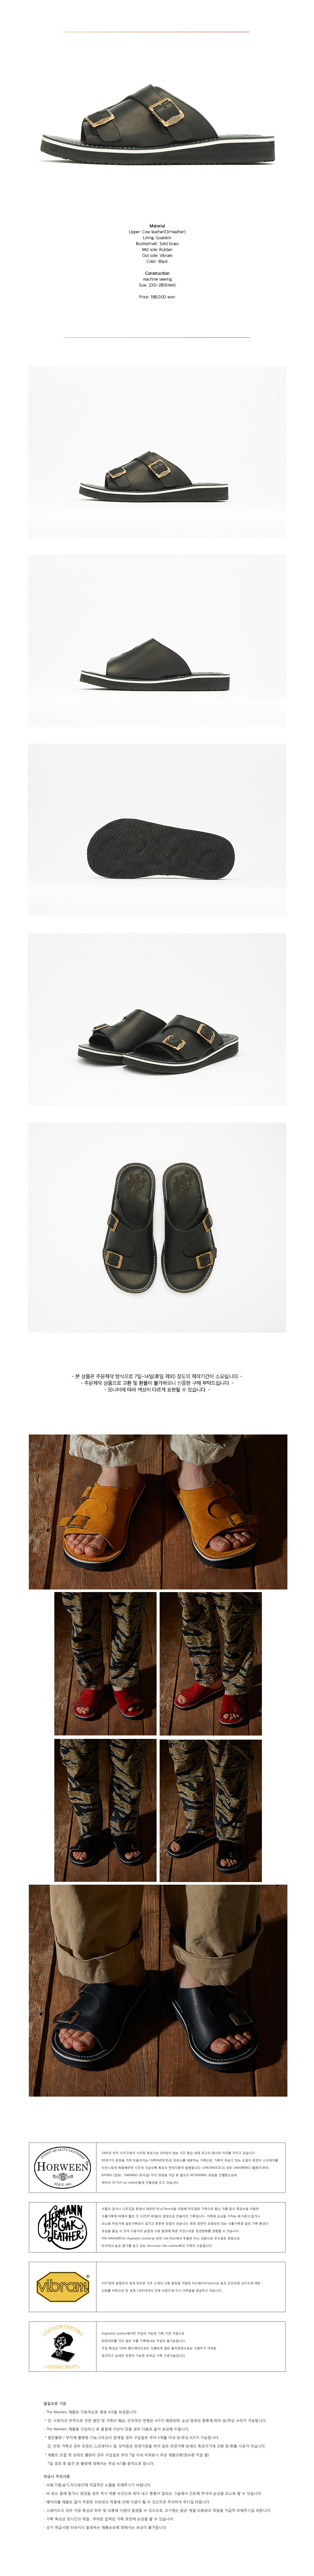 웽커스(THEWANKSERS) Oil-leather Double Strap [Black]